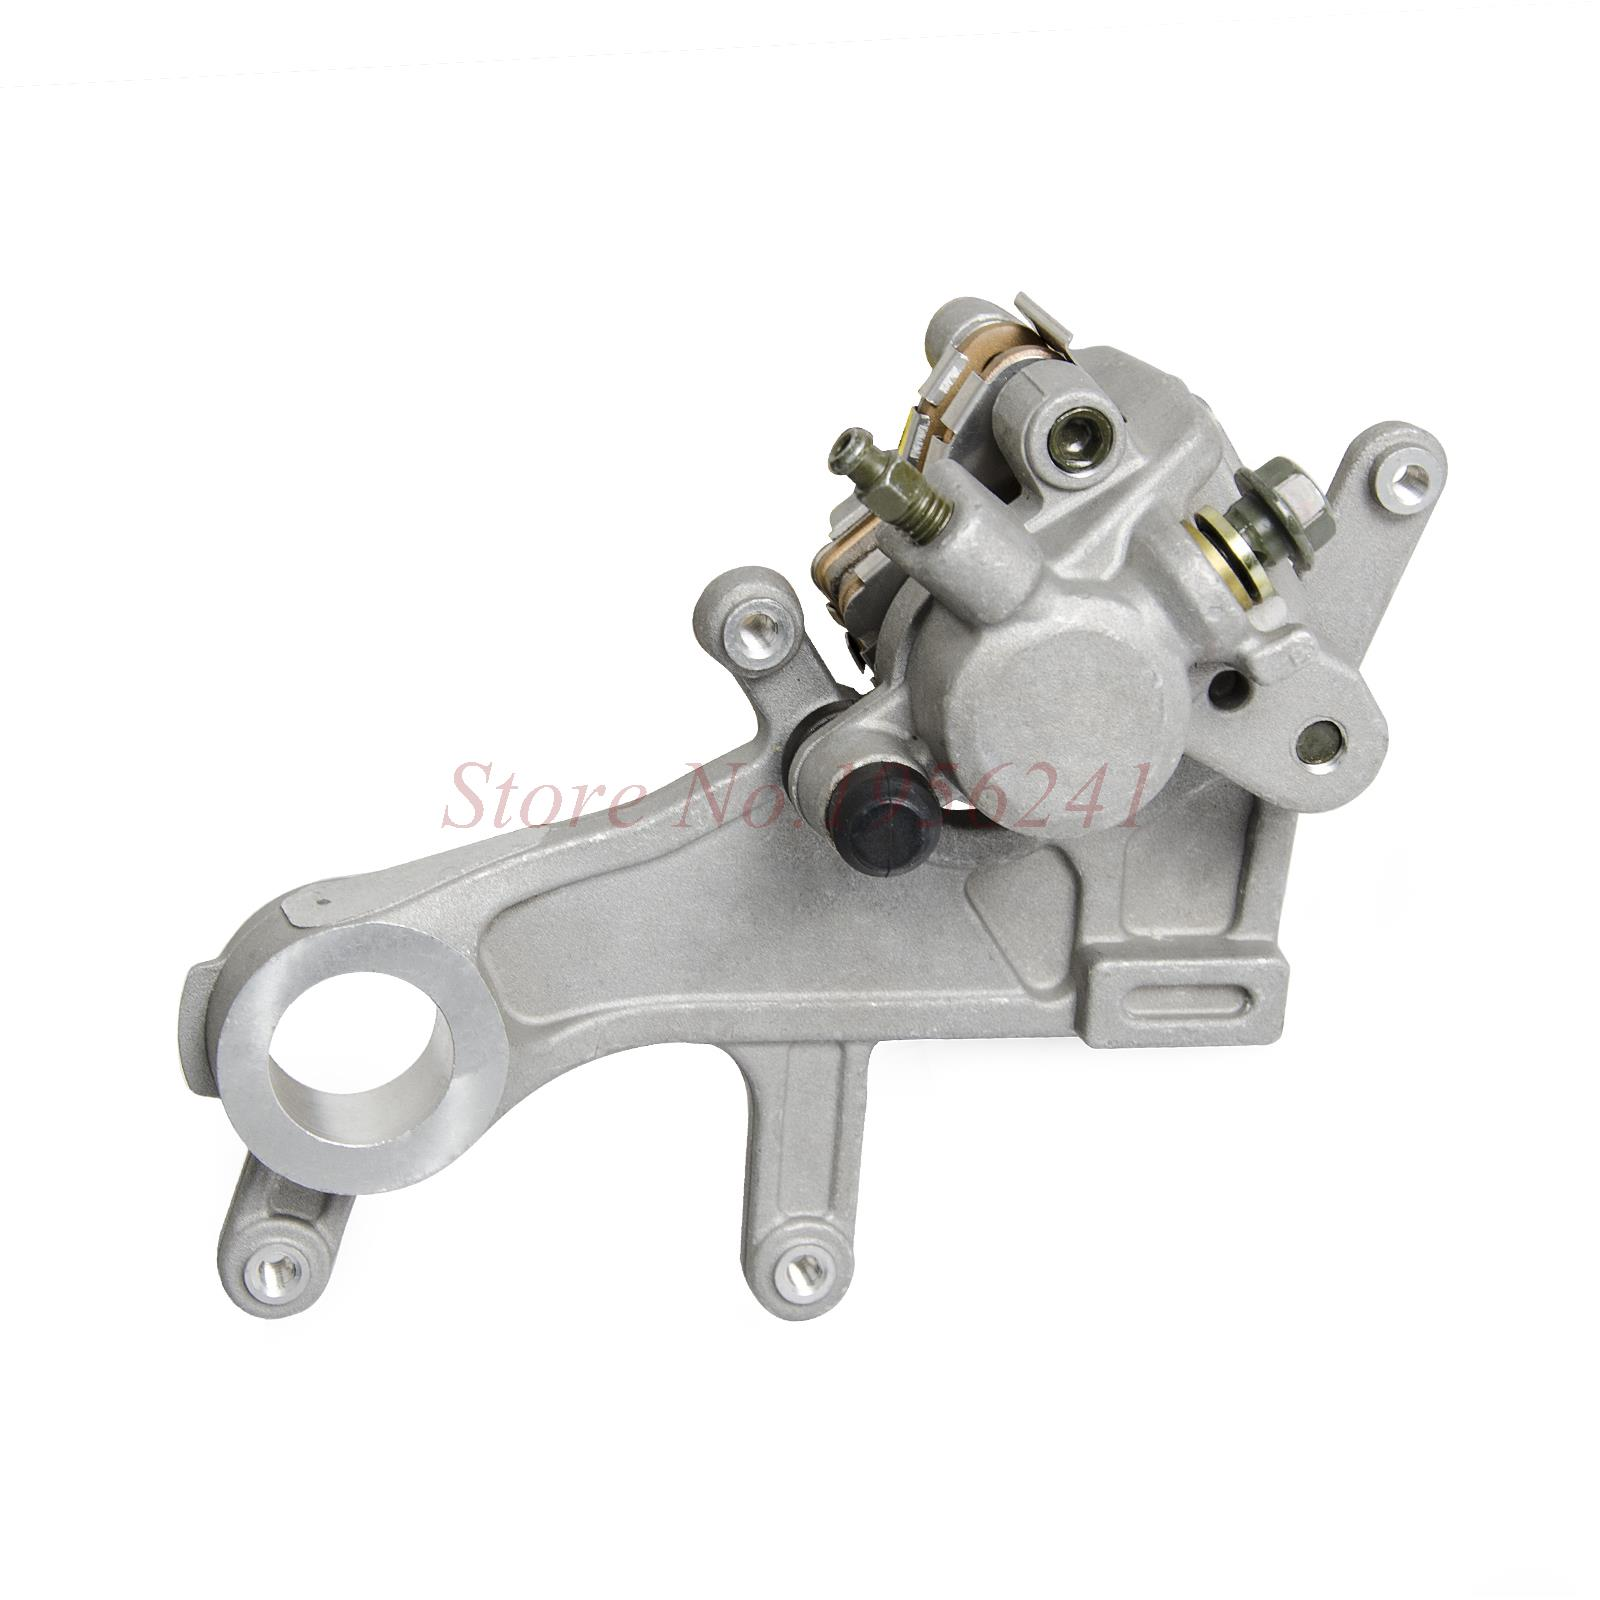 Motorcycle Rear Brake Caliper For Honda CRF450R 2002-2016 CRF450X 2005 2006 & 2008 2009 & 2012-2016 CRF 450 X R